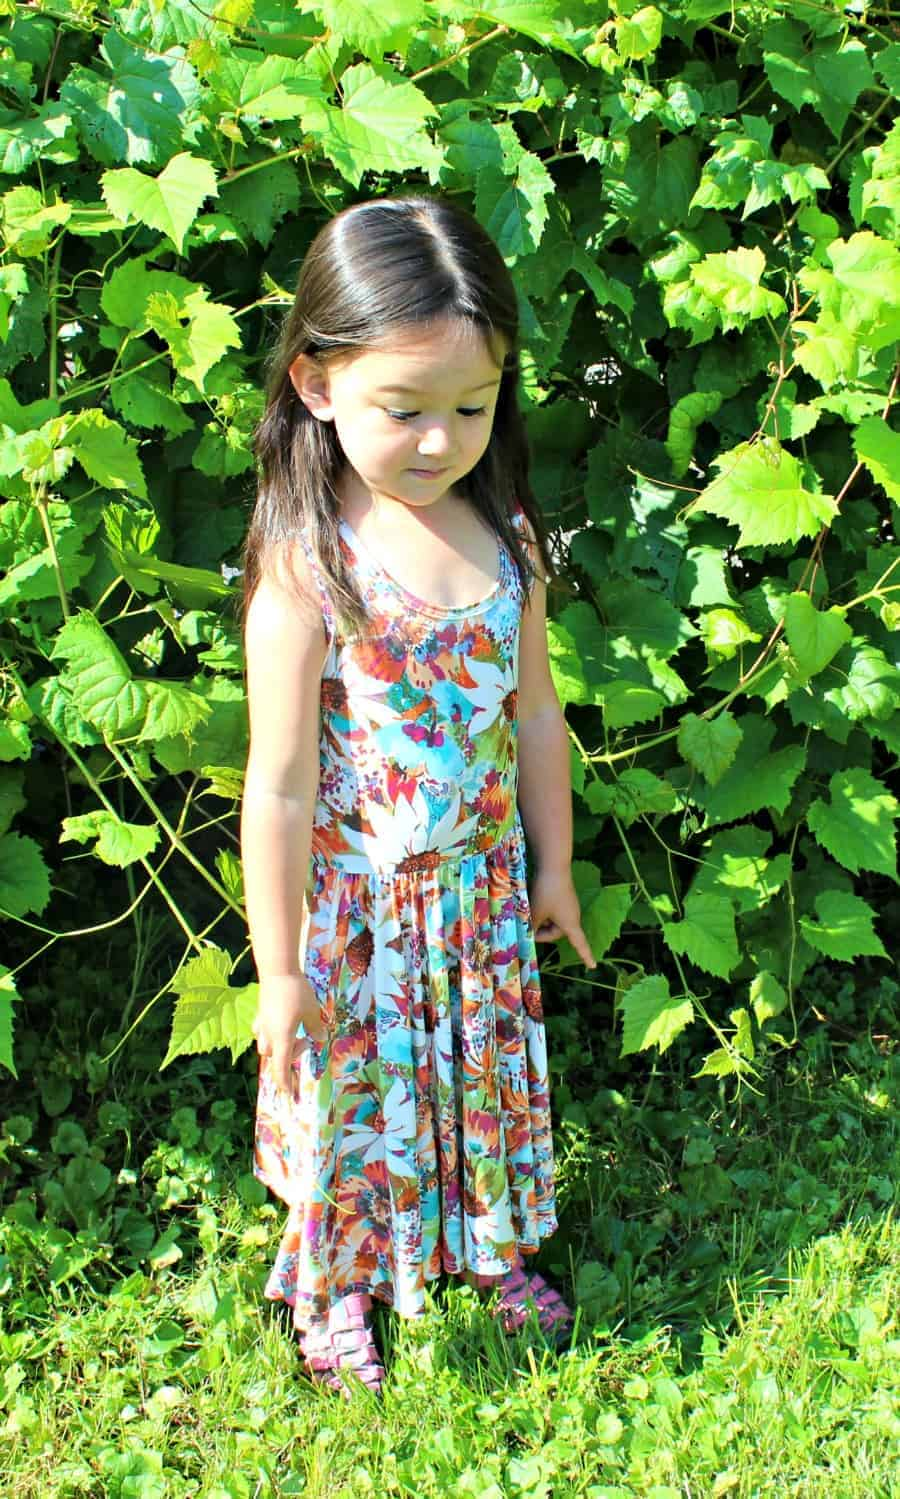 Have you heard of DotDot Smile? They offer affordable and quality dresses for little girls.